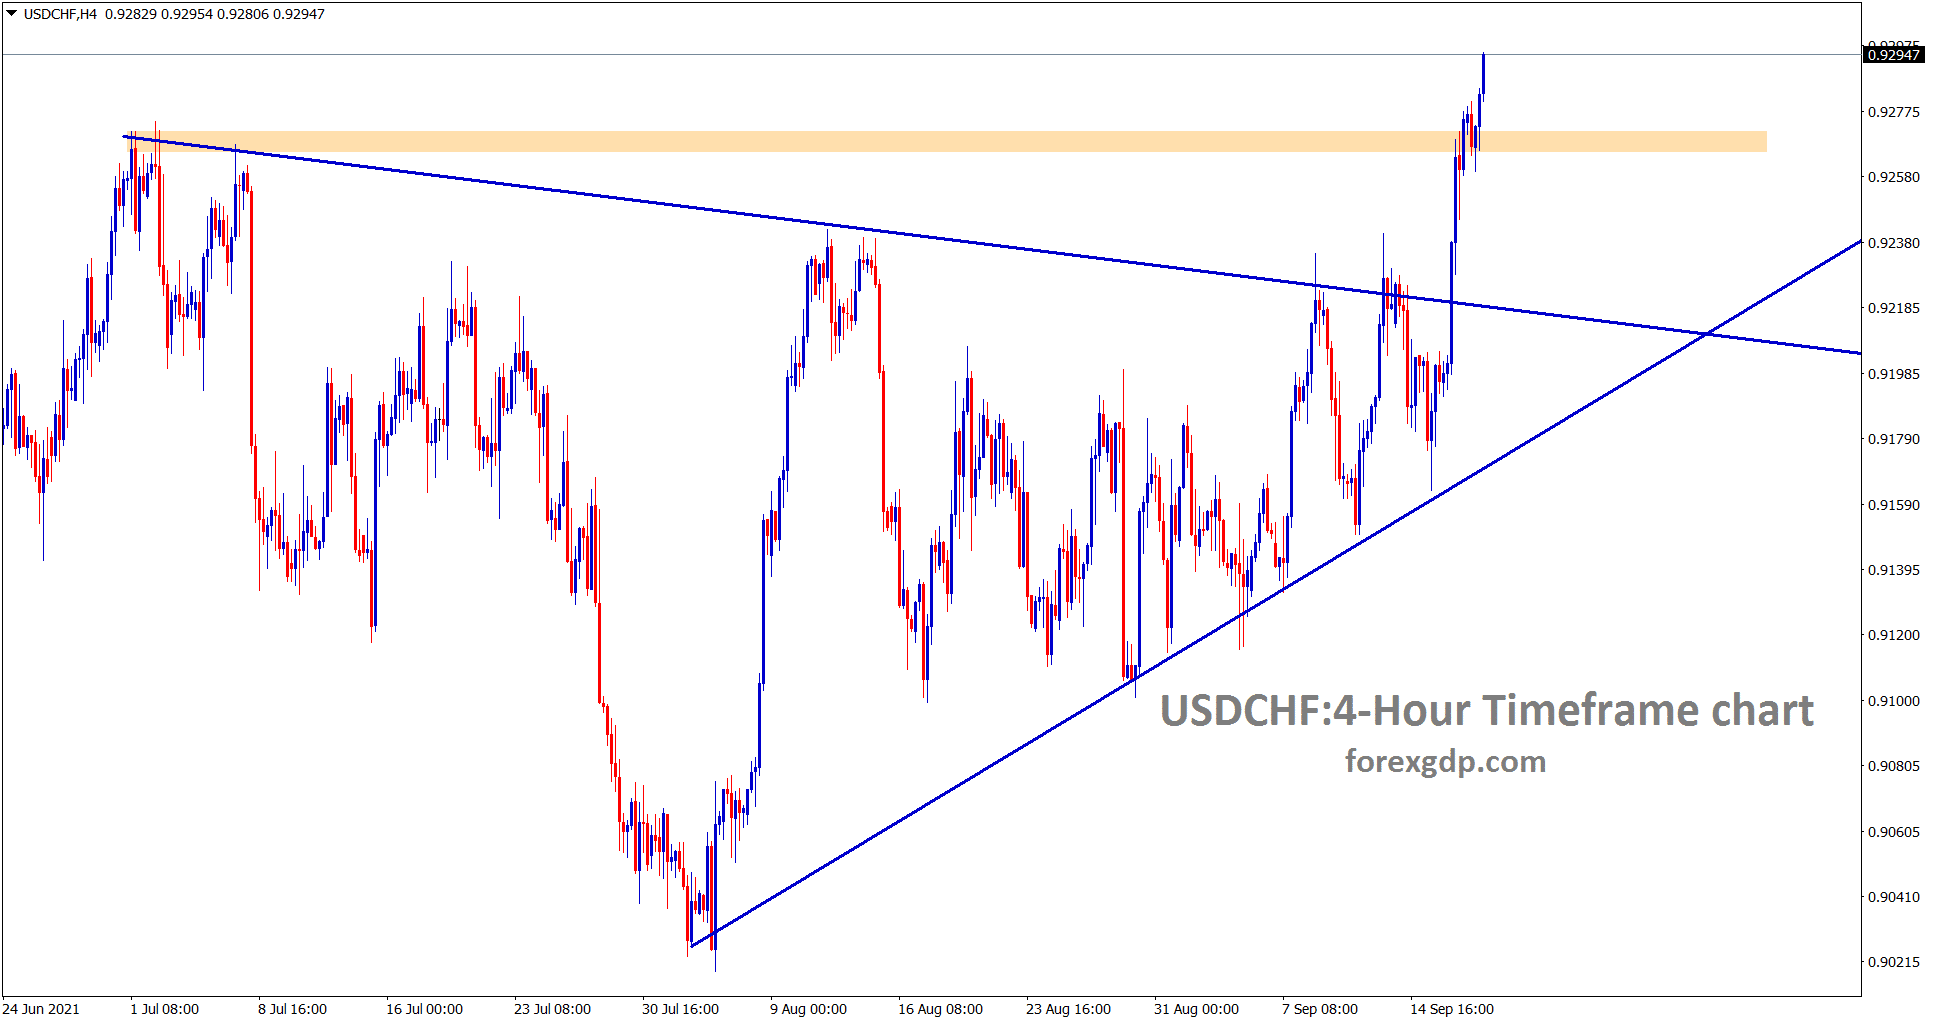 USDCHF is trying to break the horizontal resistance level at the top